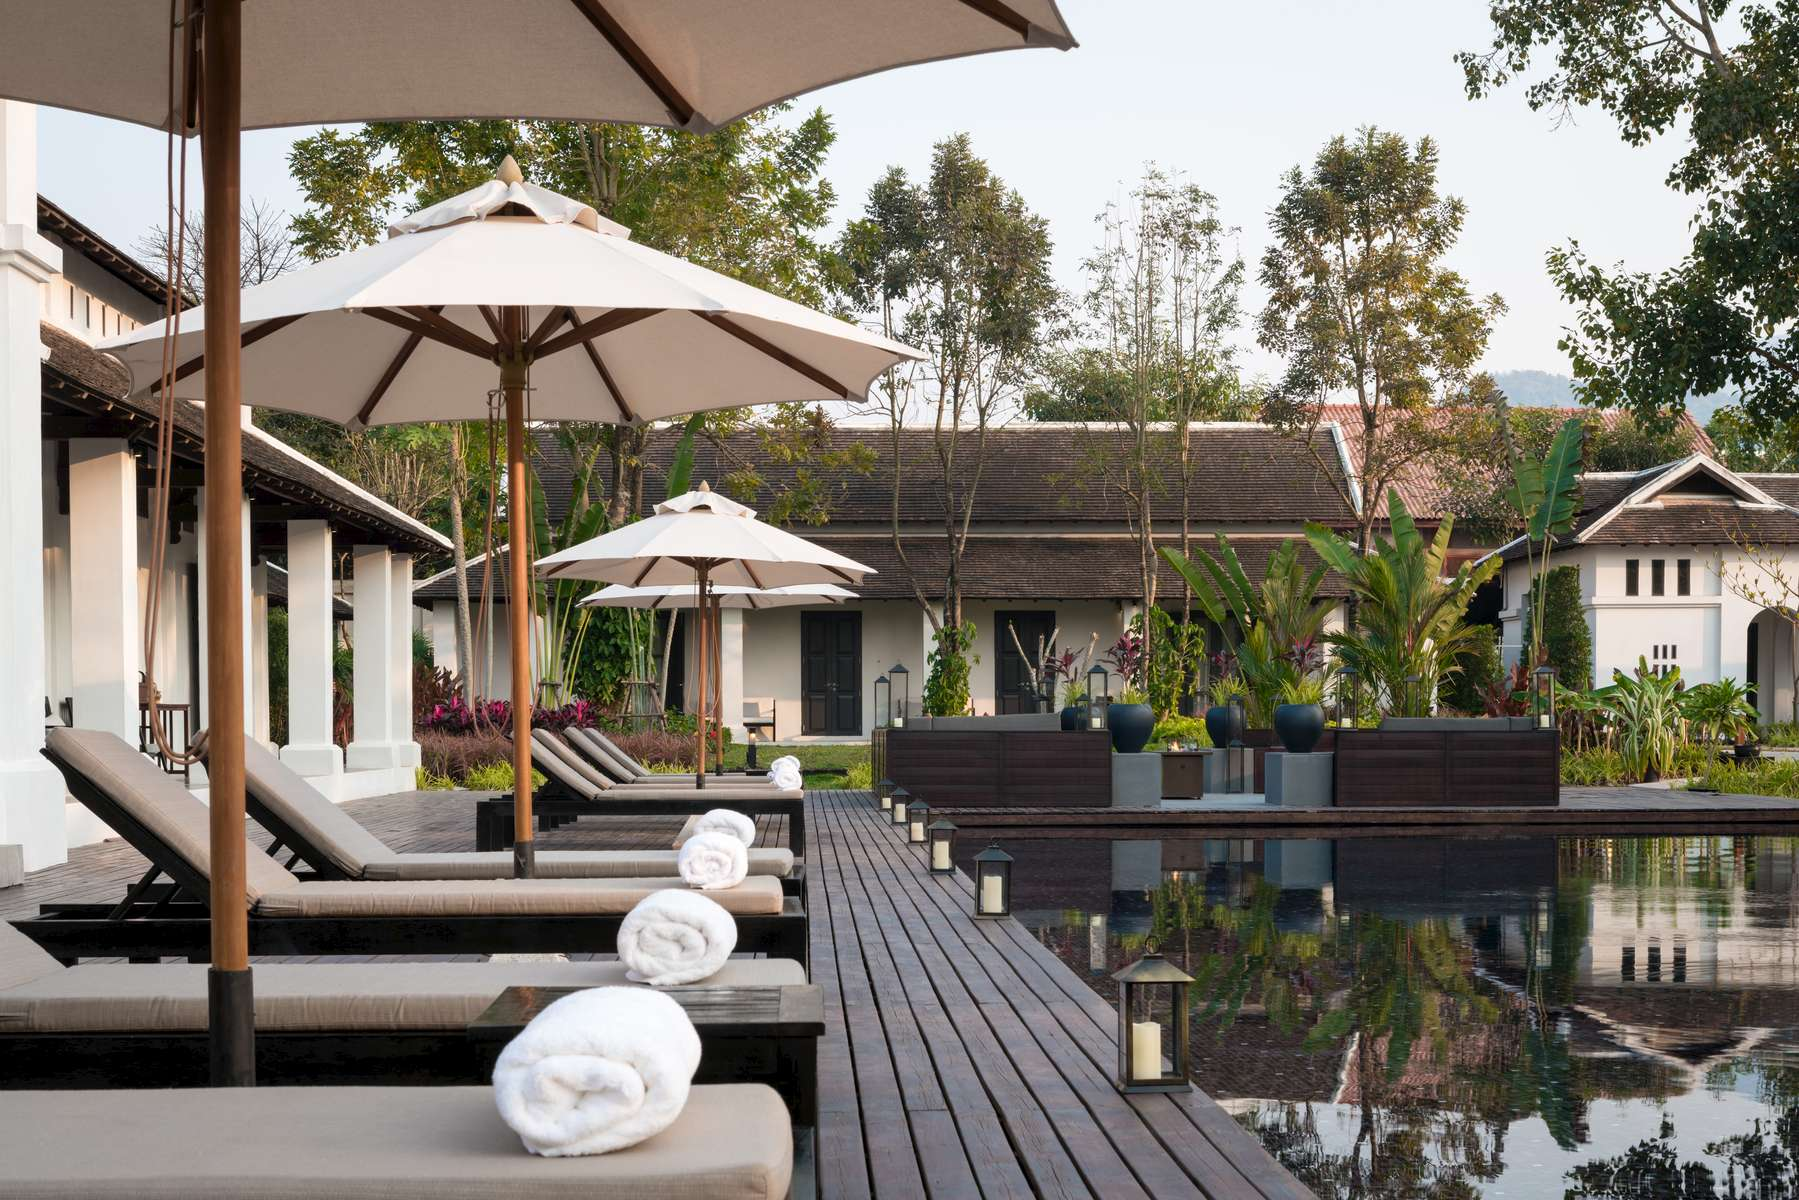 Sofitel-luang-prabang-pool-photo-by-Cyril-Eberle-DSC02205-Edit-1.jpg